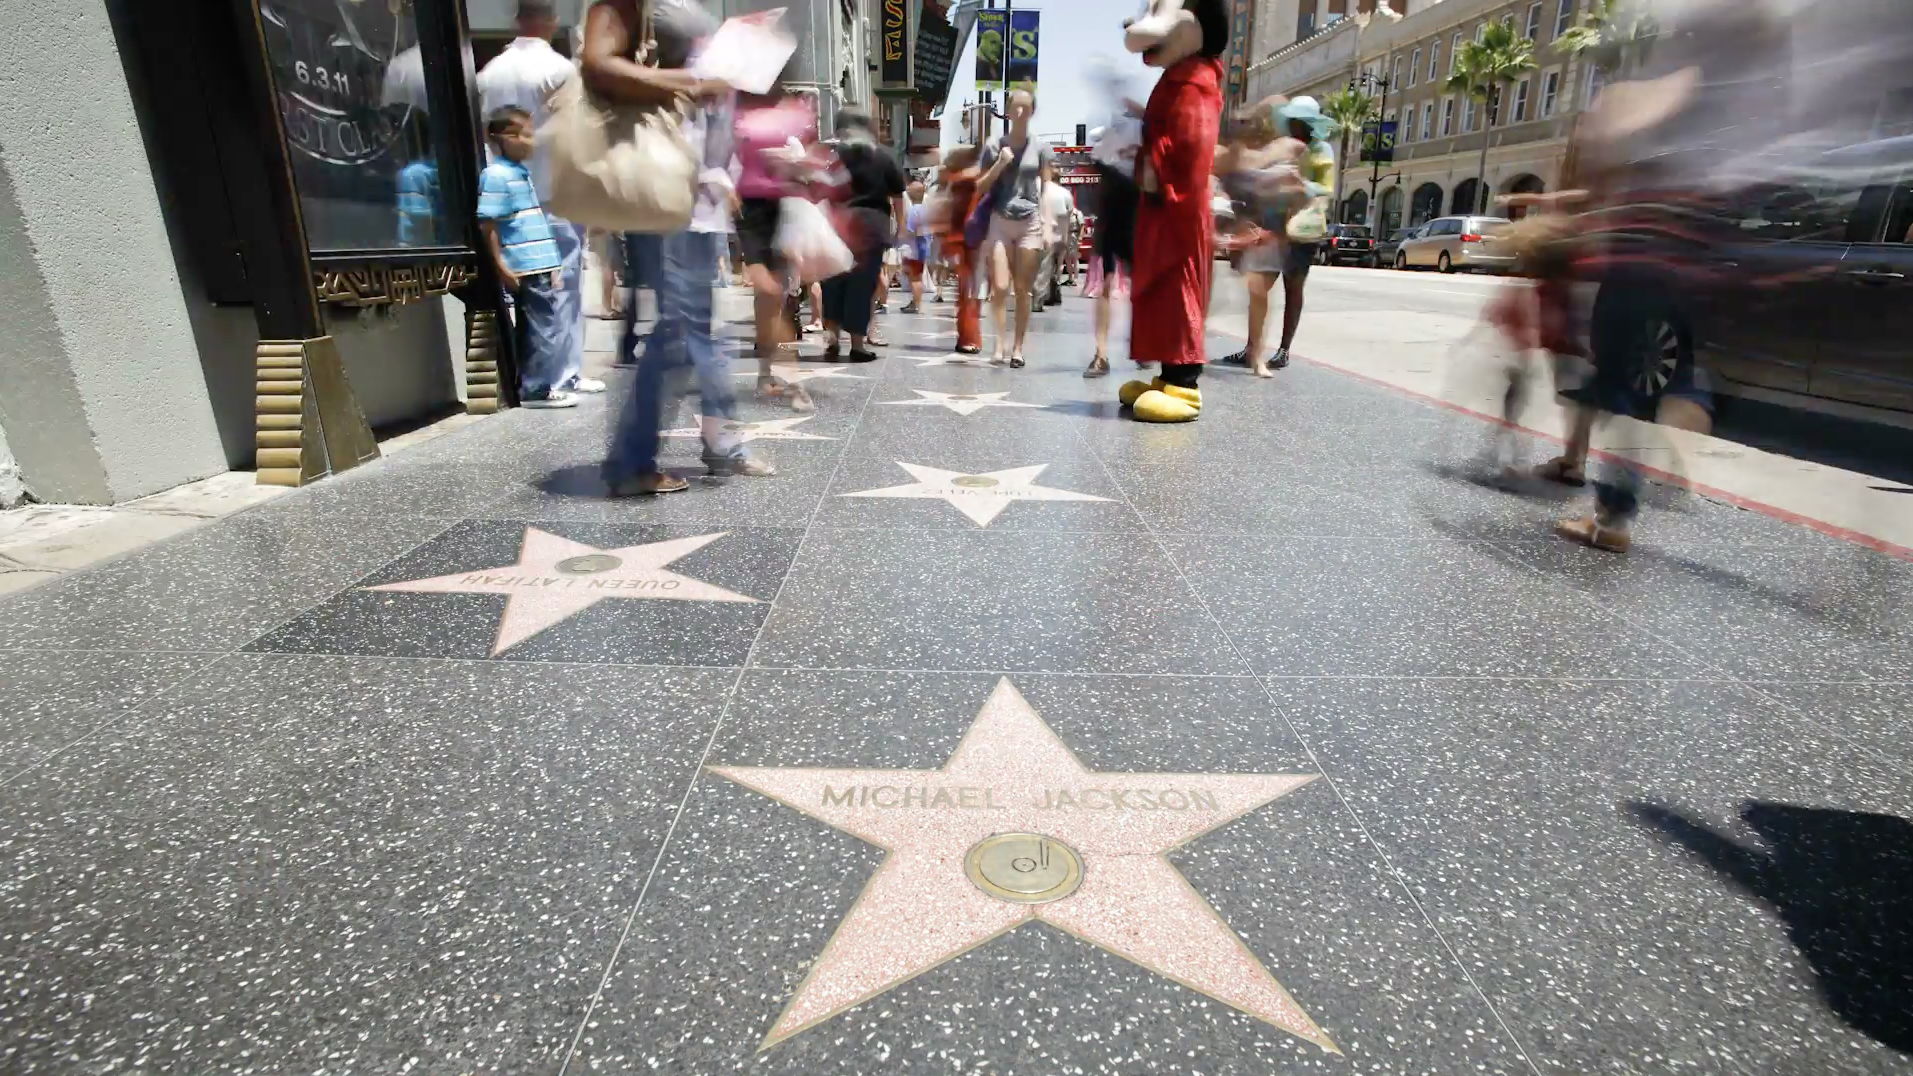 Hollywood Star-Michael Jackson